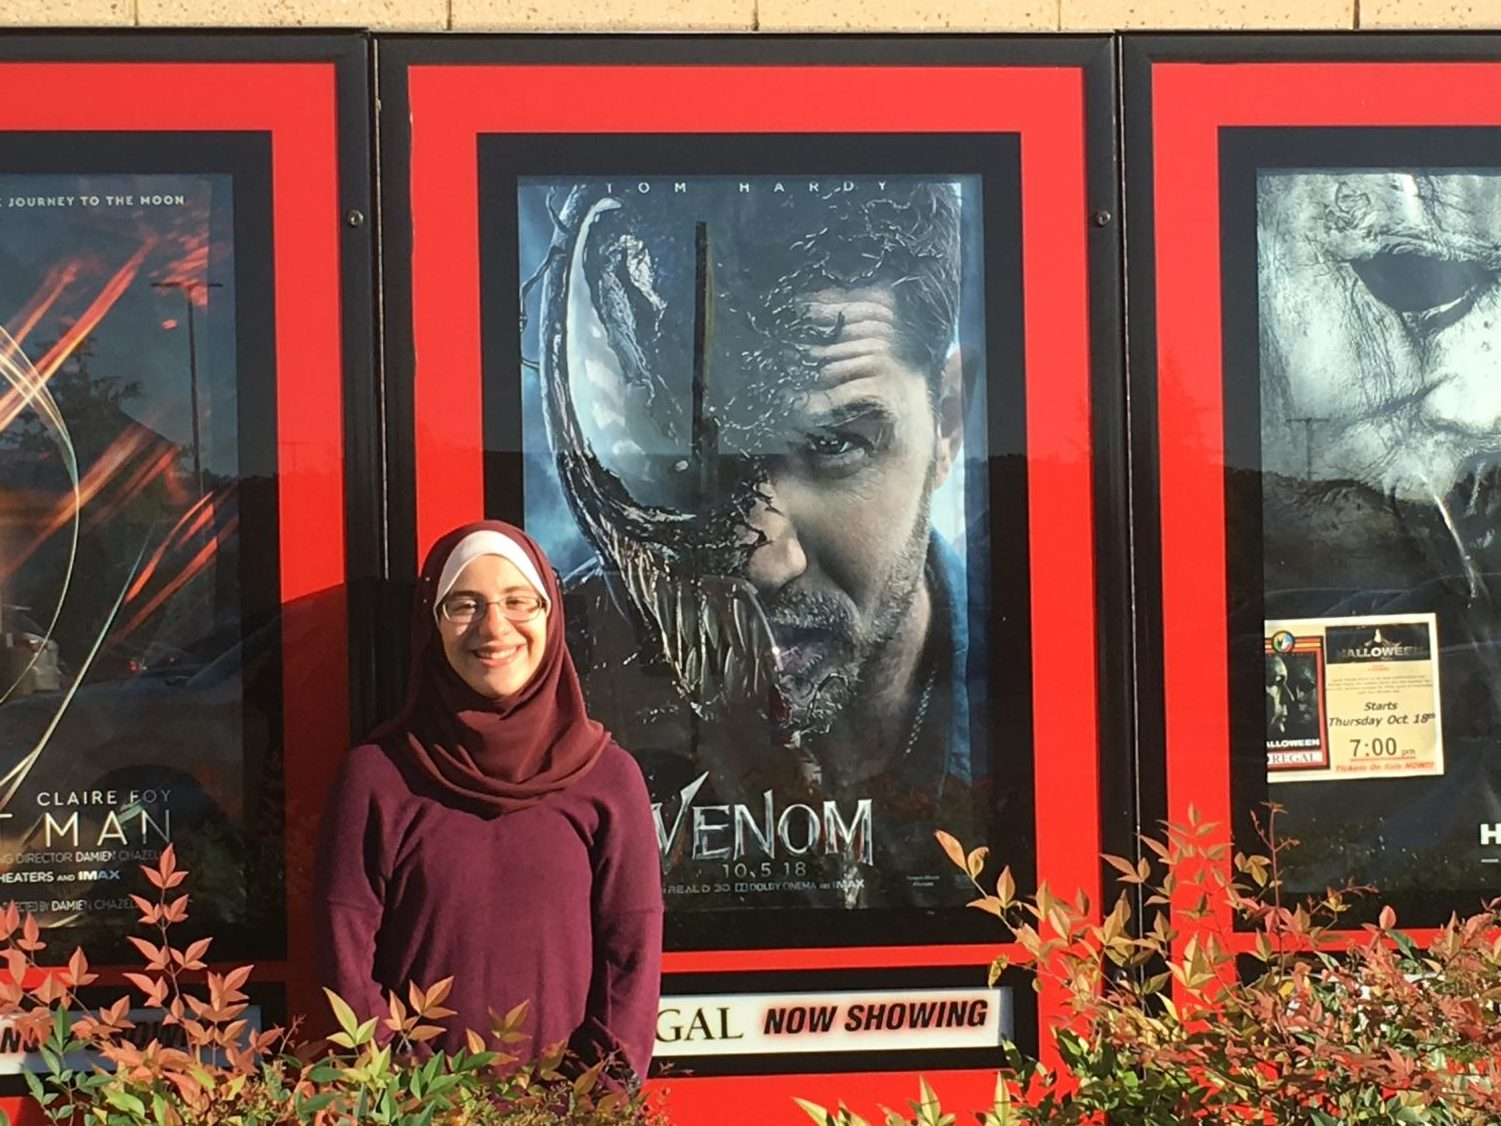 Although Venom has received mixed reviews from critics, it has crushed the box office with over $360 million in box office sales.